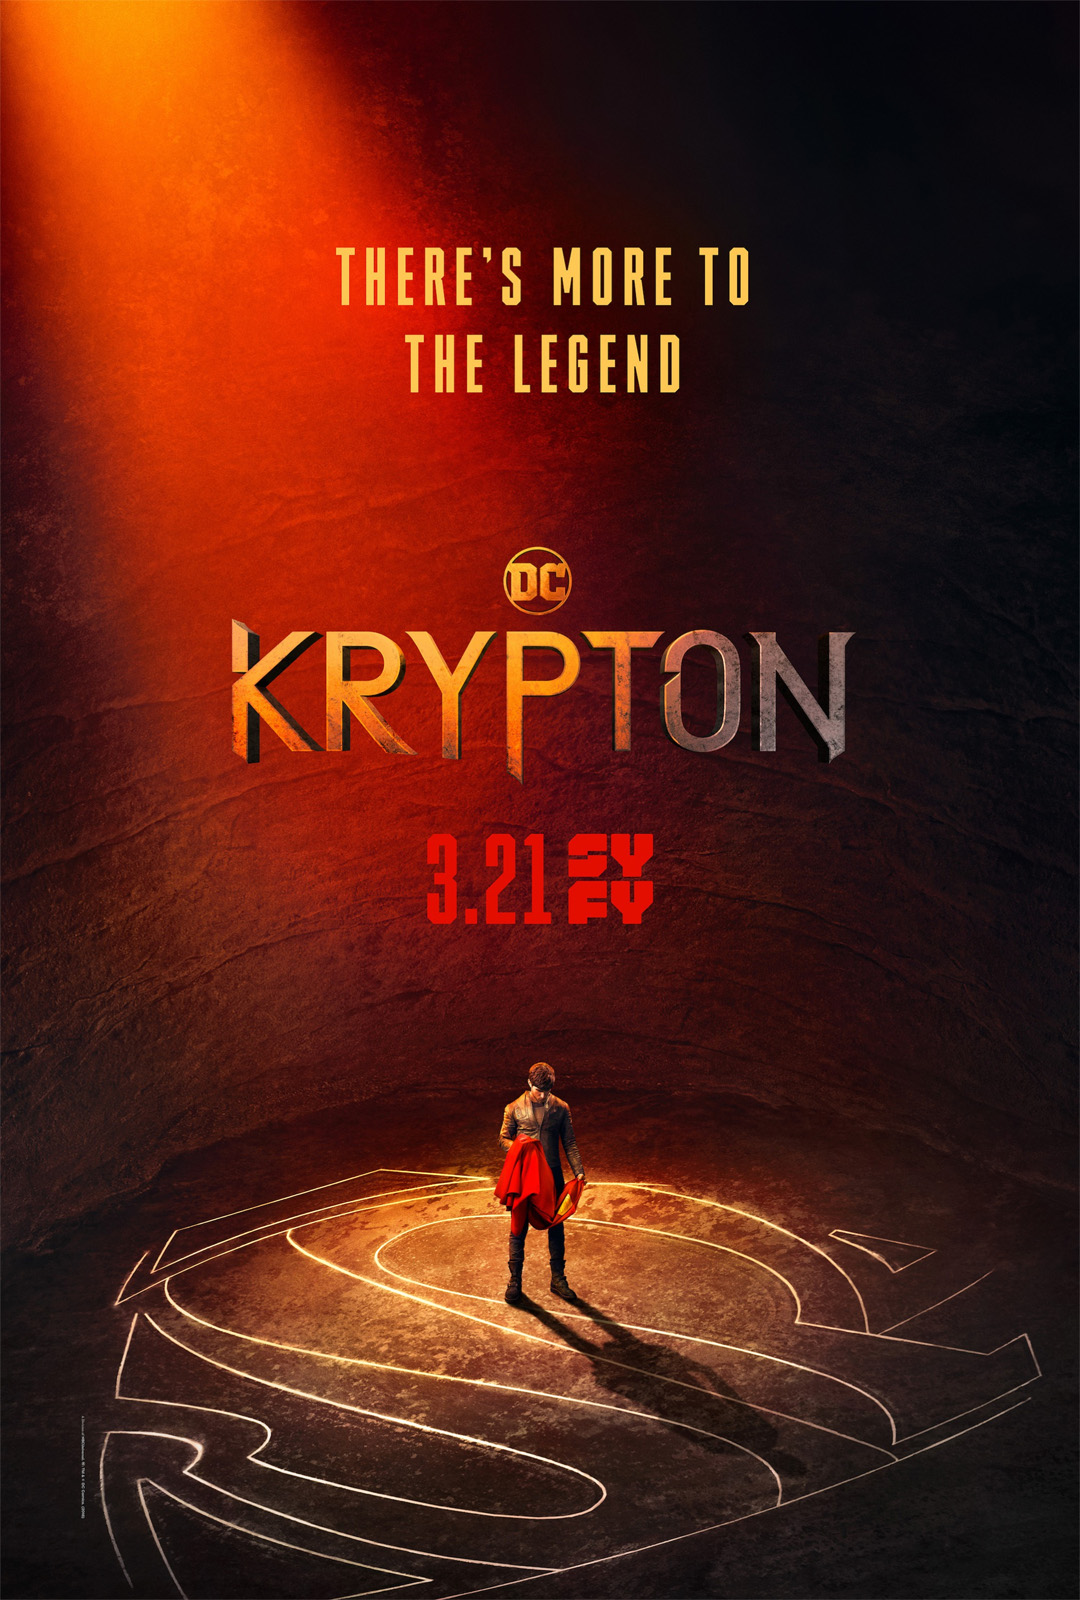 krypton s233rie 2018 adorocinema